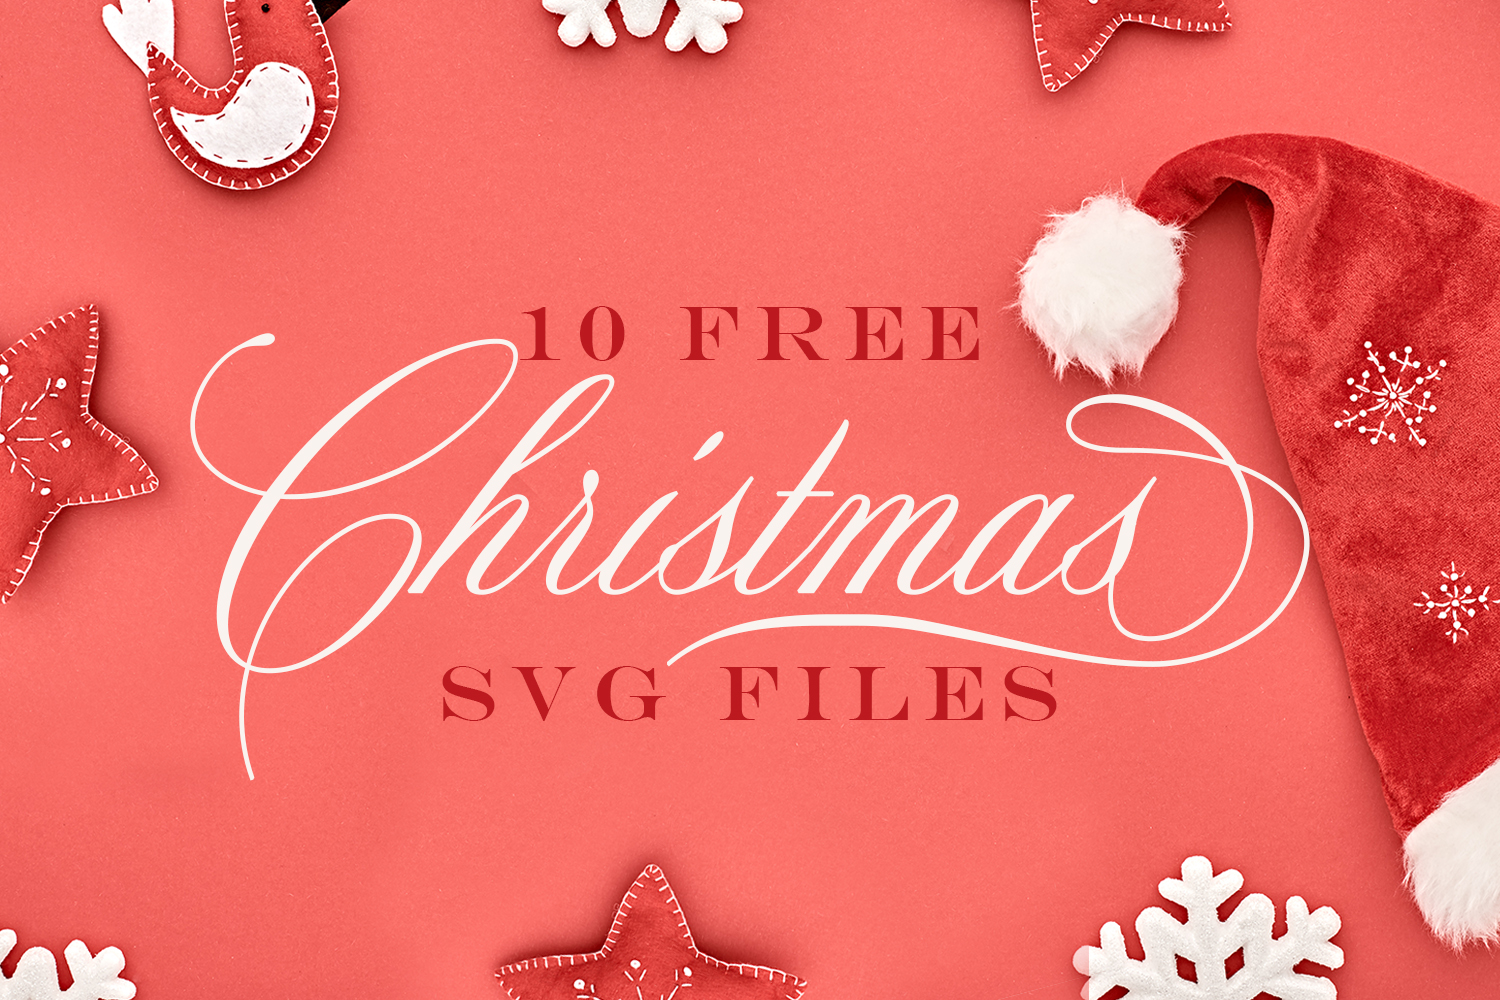 10 FREE Christmas SVG Files